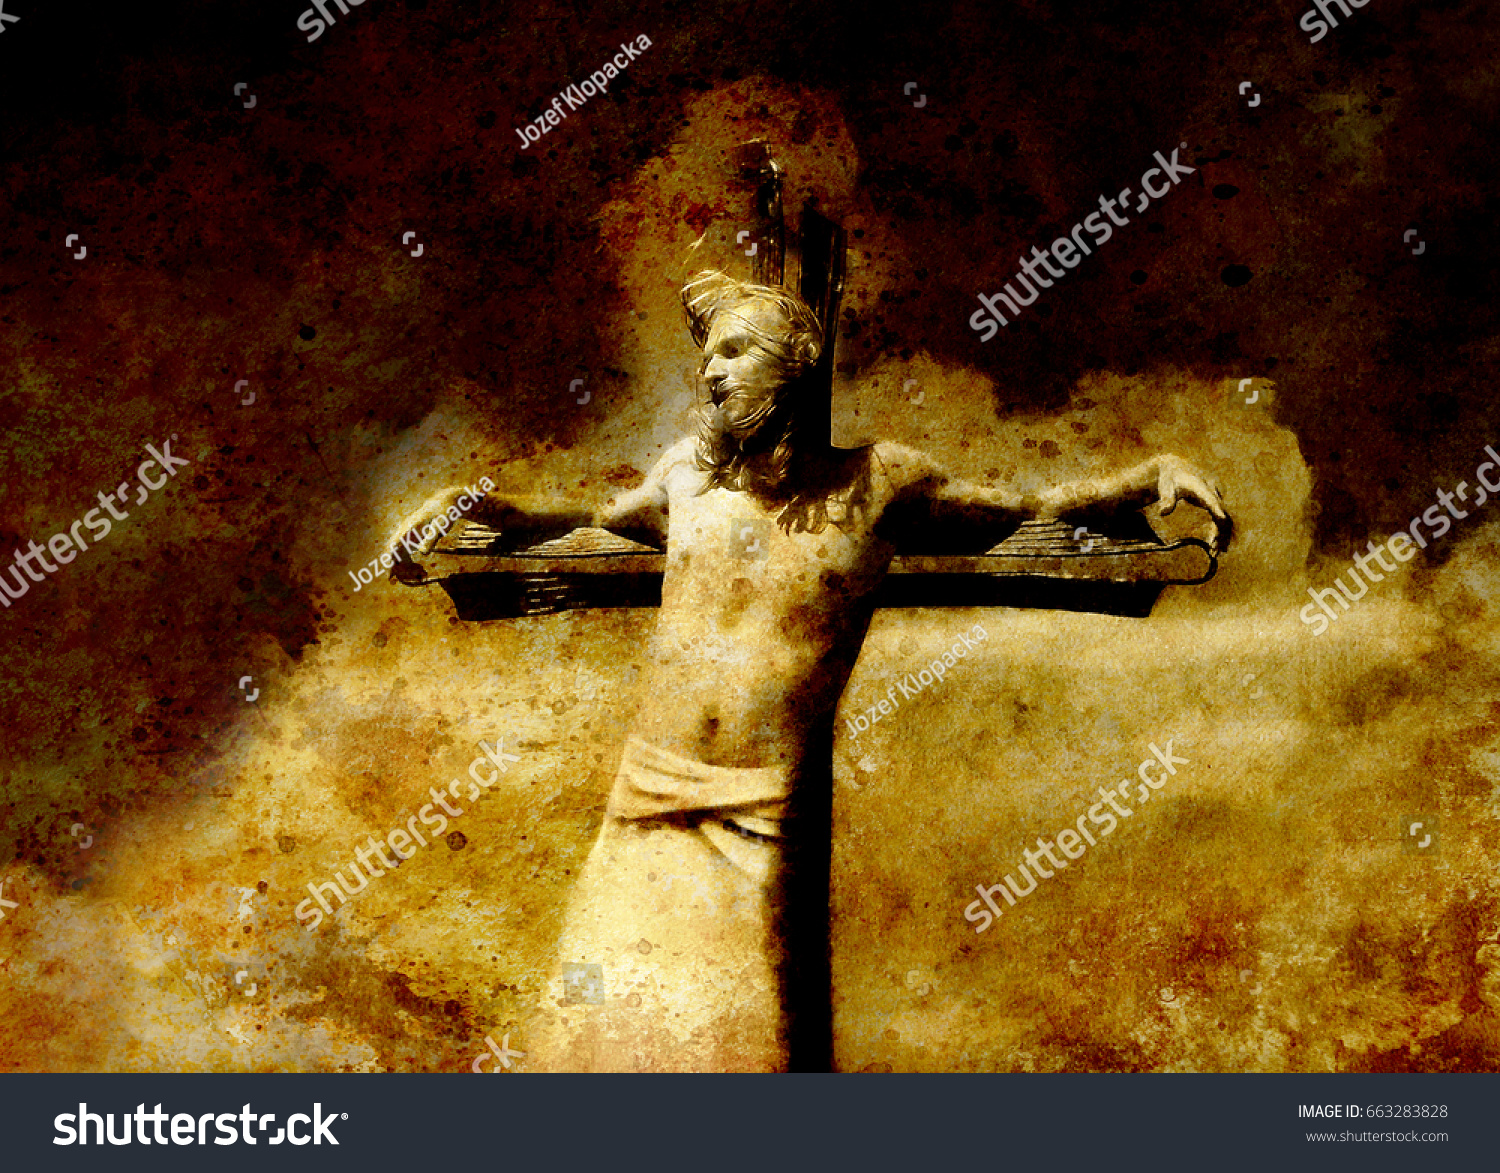 interpretation jesus on cross graphic painting stock illustration